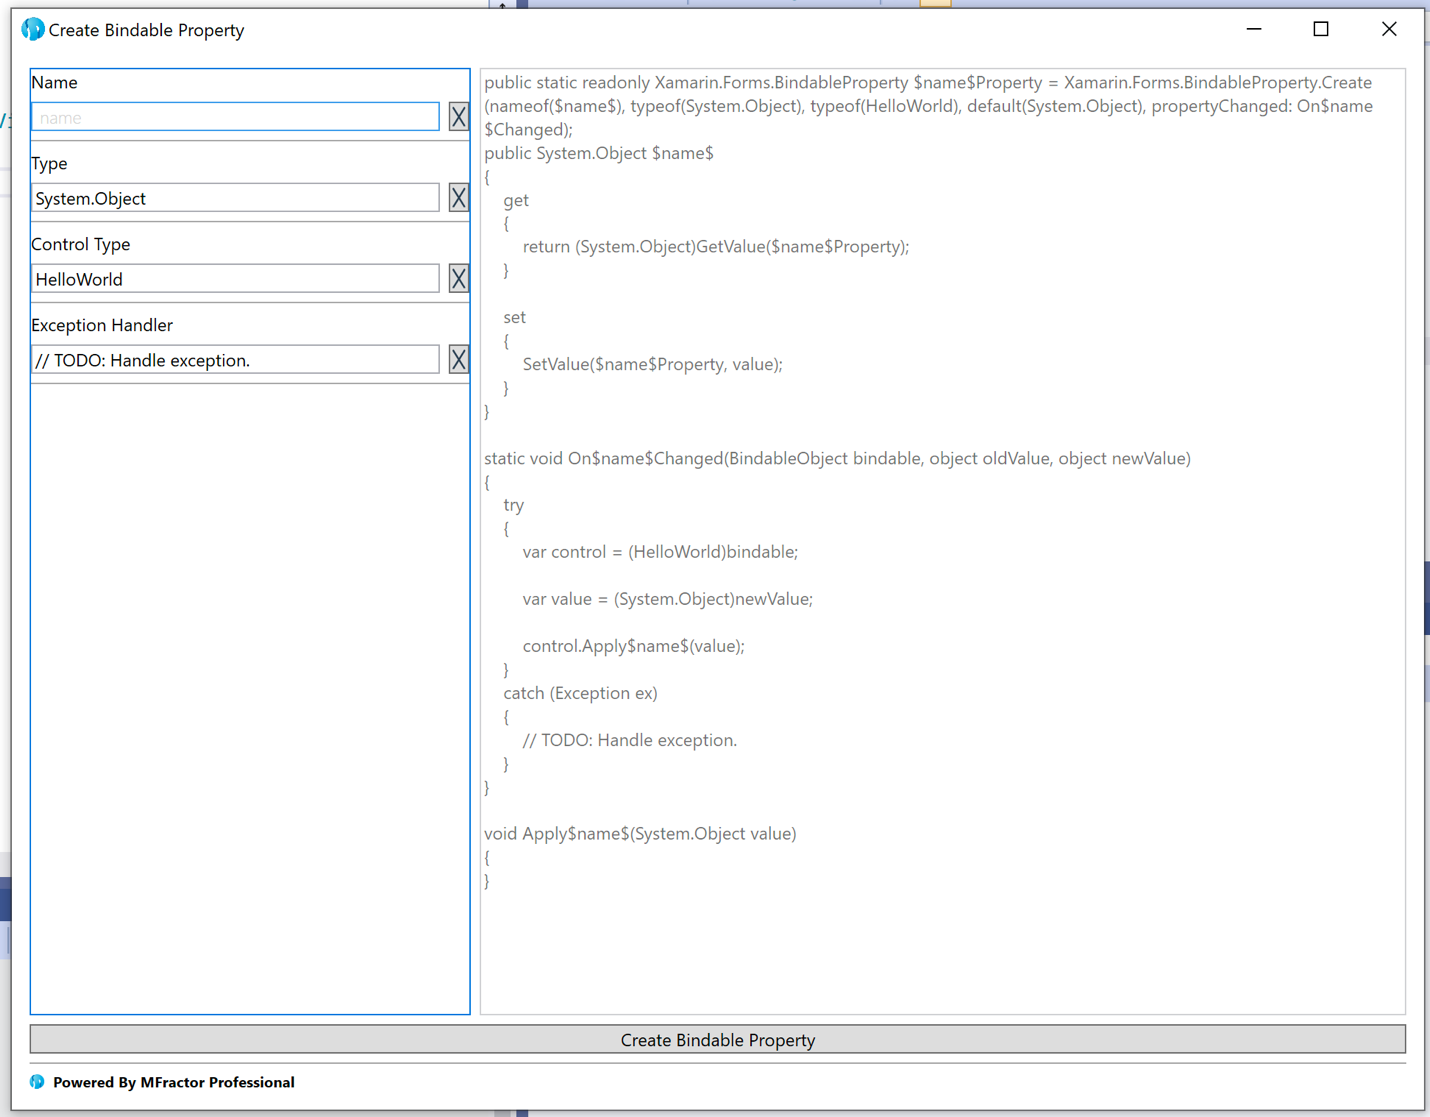 Using MFractors bindable property wizard to create a new Xamarin.Forms bindable property